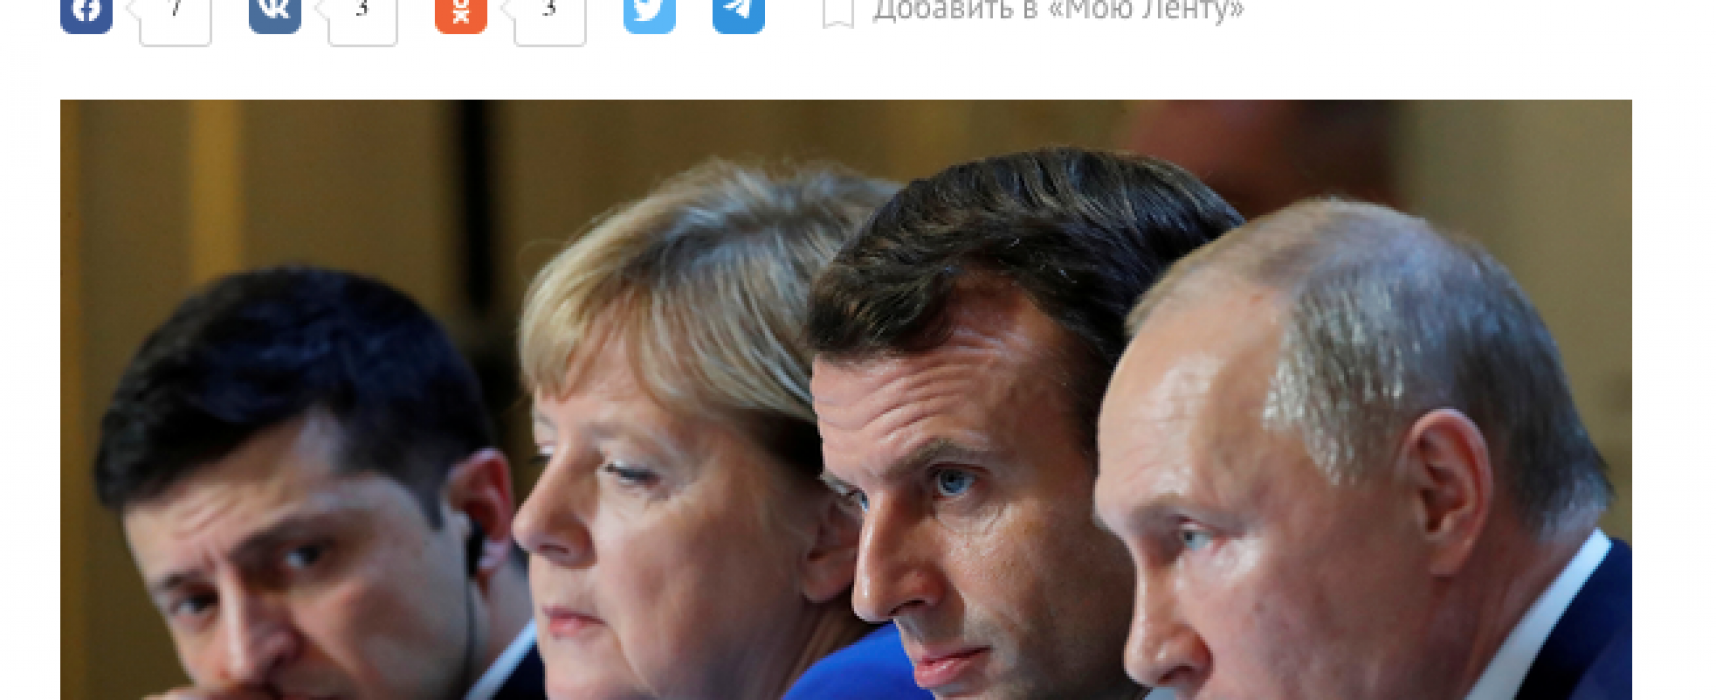 The Ukraine-Russia Paris Meeting Through the Russian Propaganda Lens